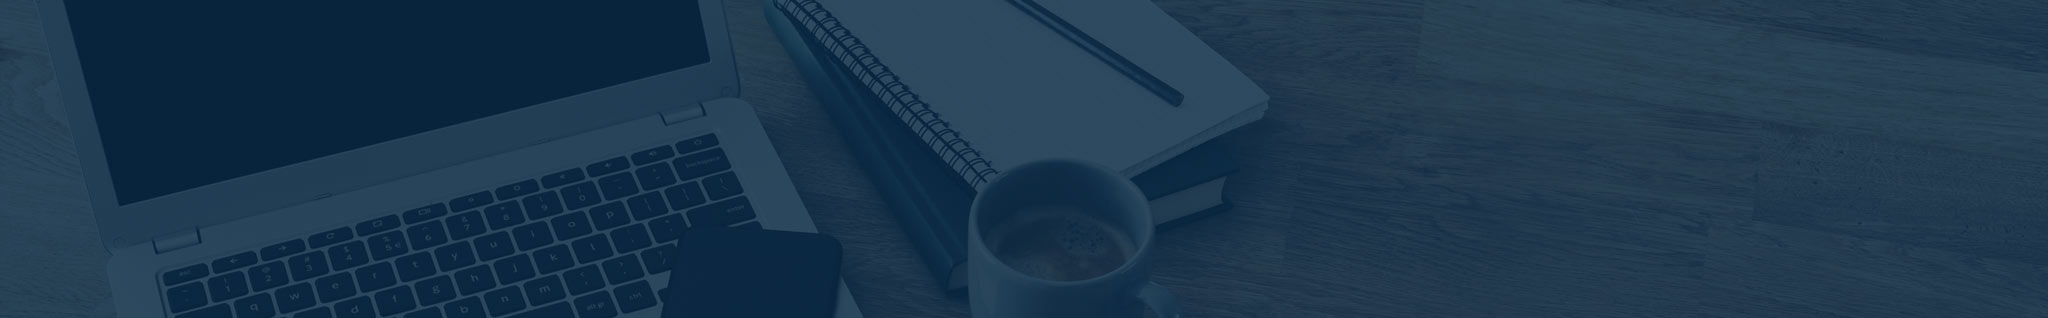 Image of a table top with notebook, coffee and laptop open